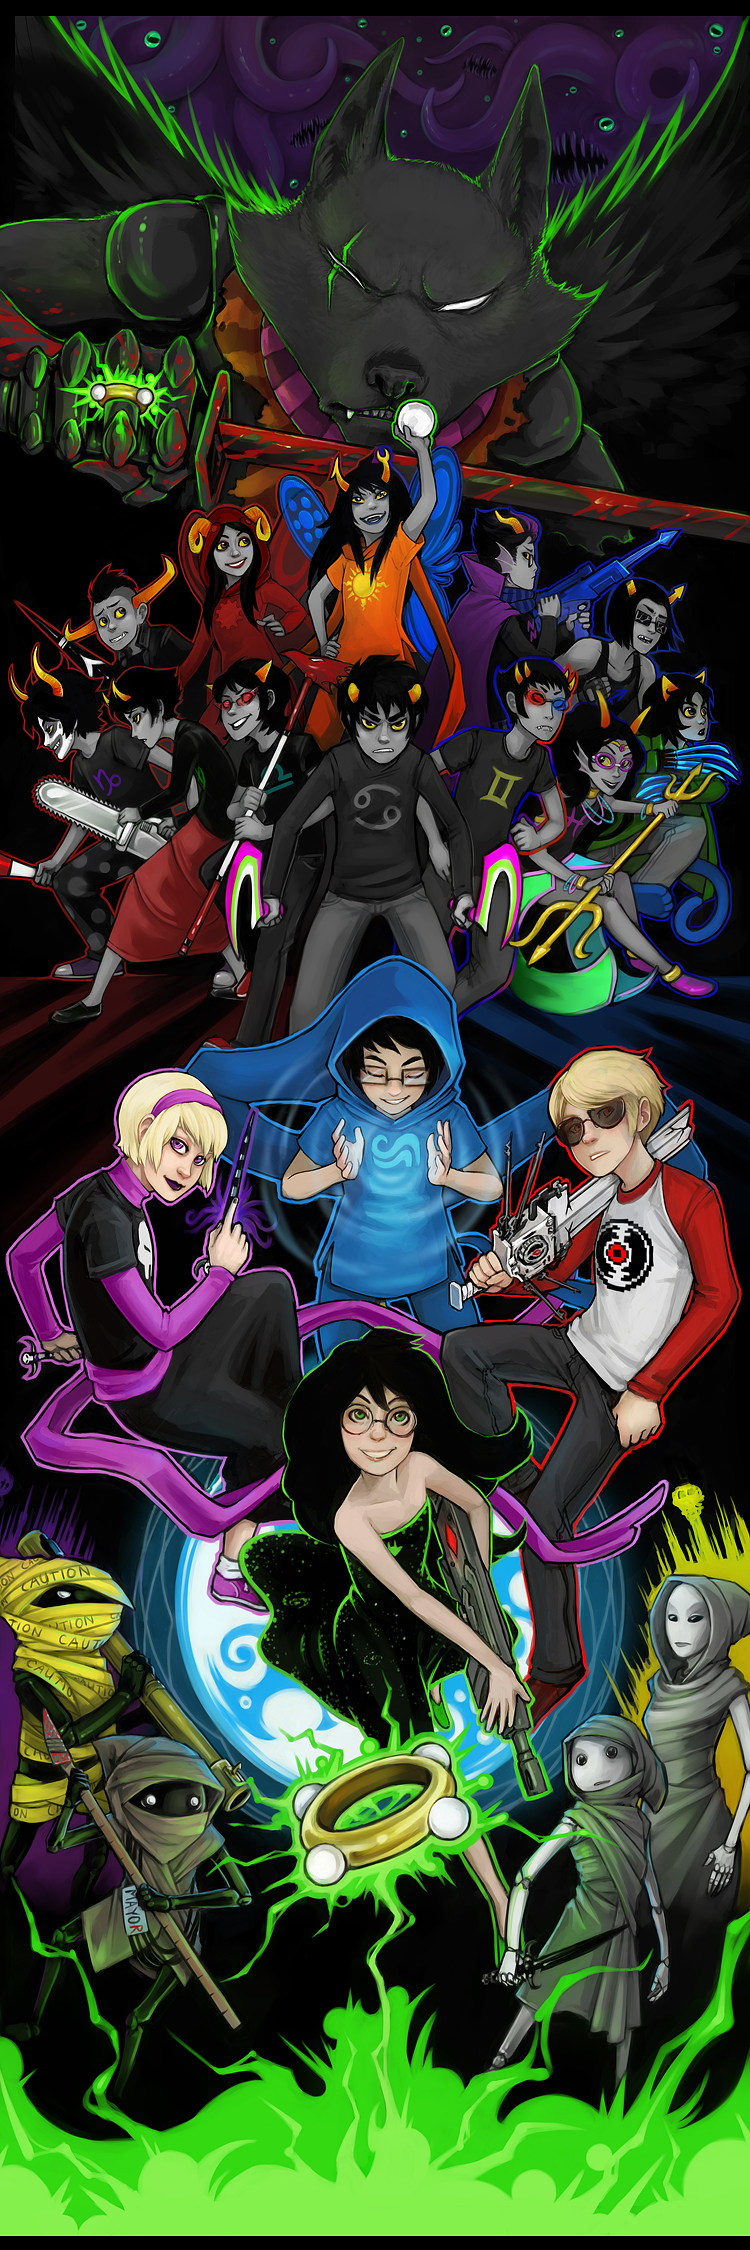 God Tier - Homestuck - Zerochan Anime Image Board